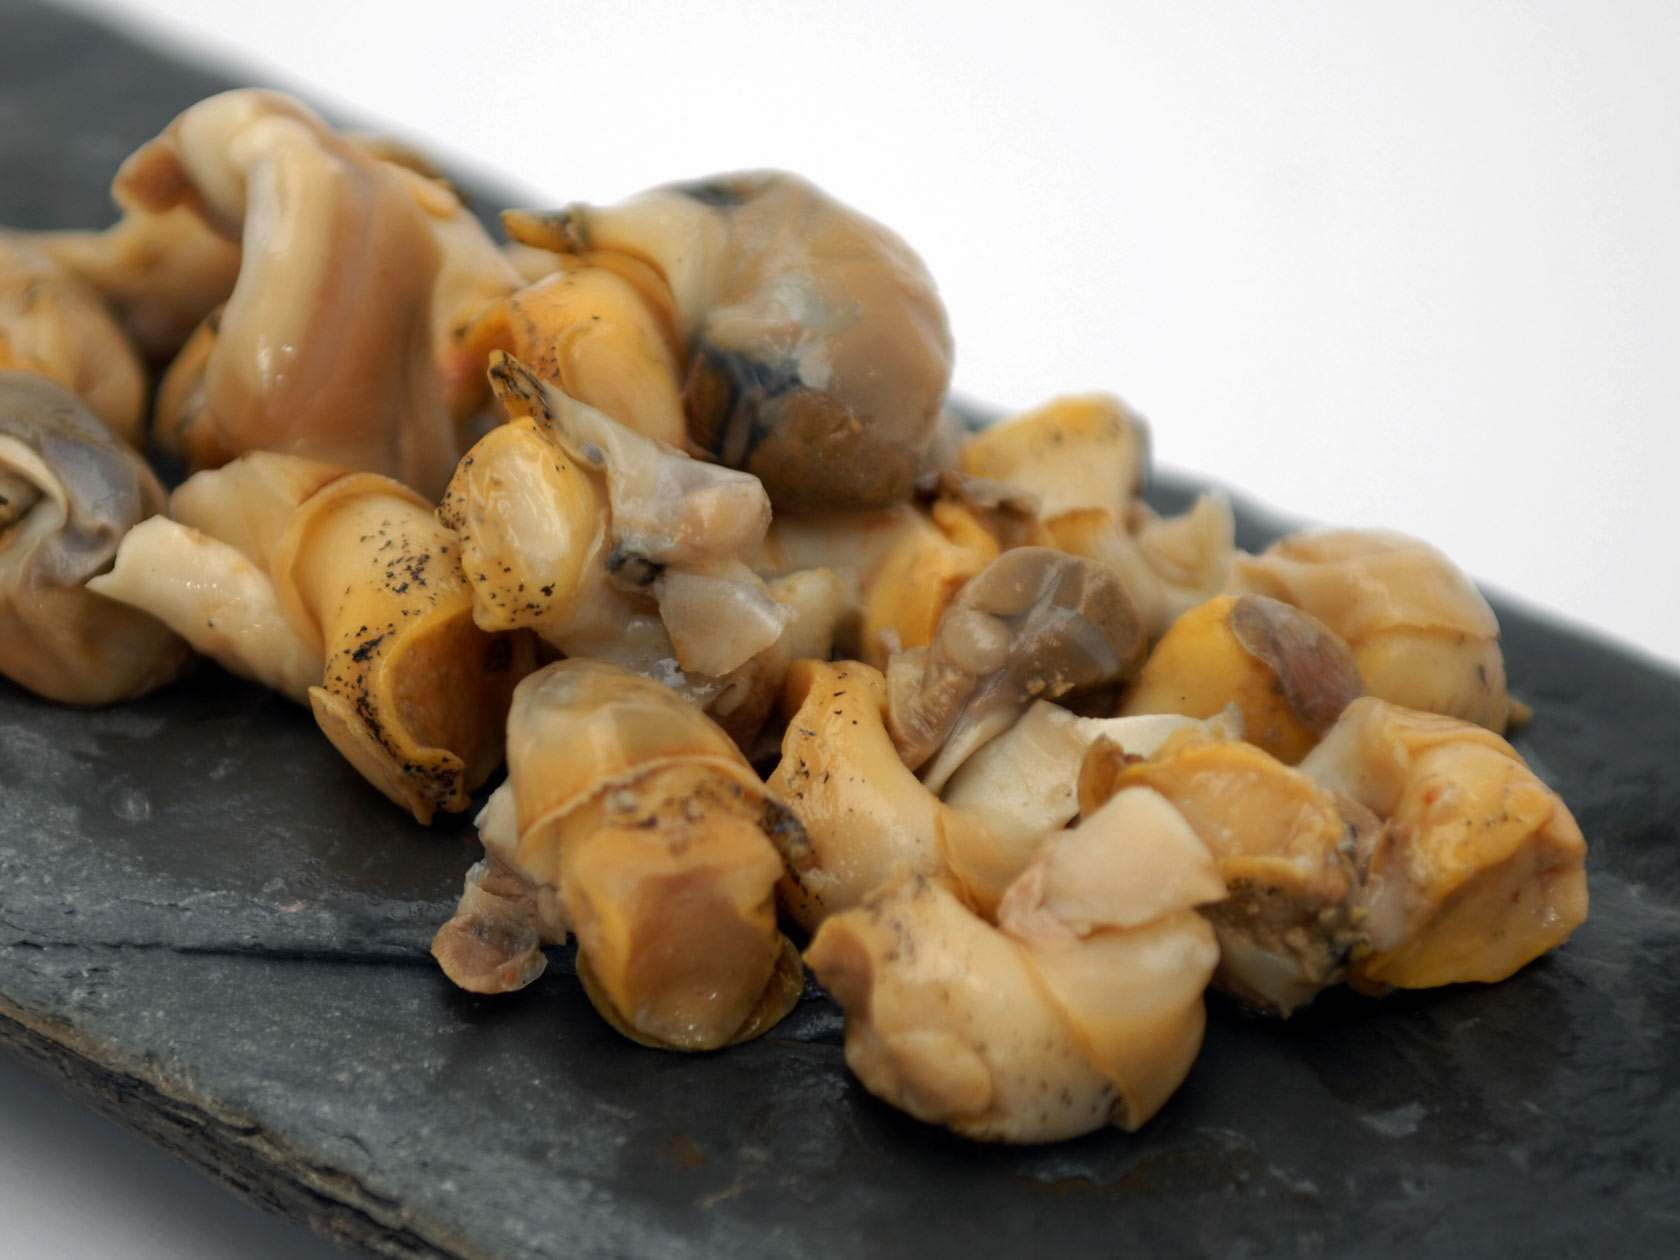 Buy Whelk Meat Online | Shelled Cooked Whelk Meat | The Fish Society